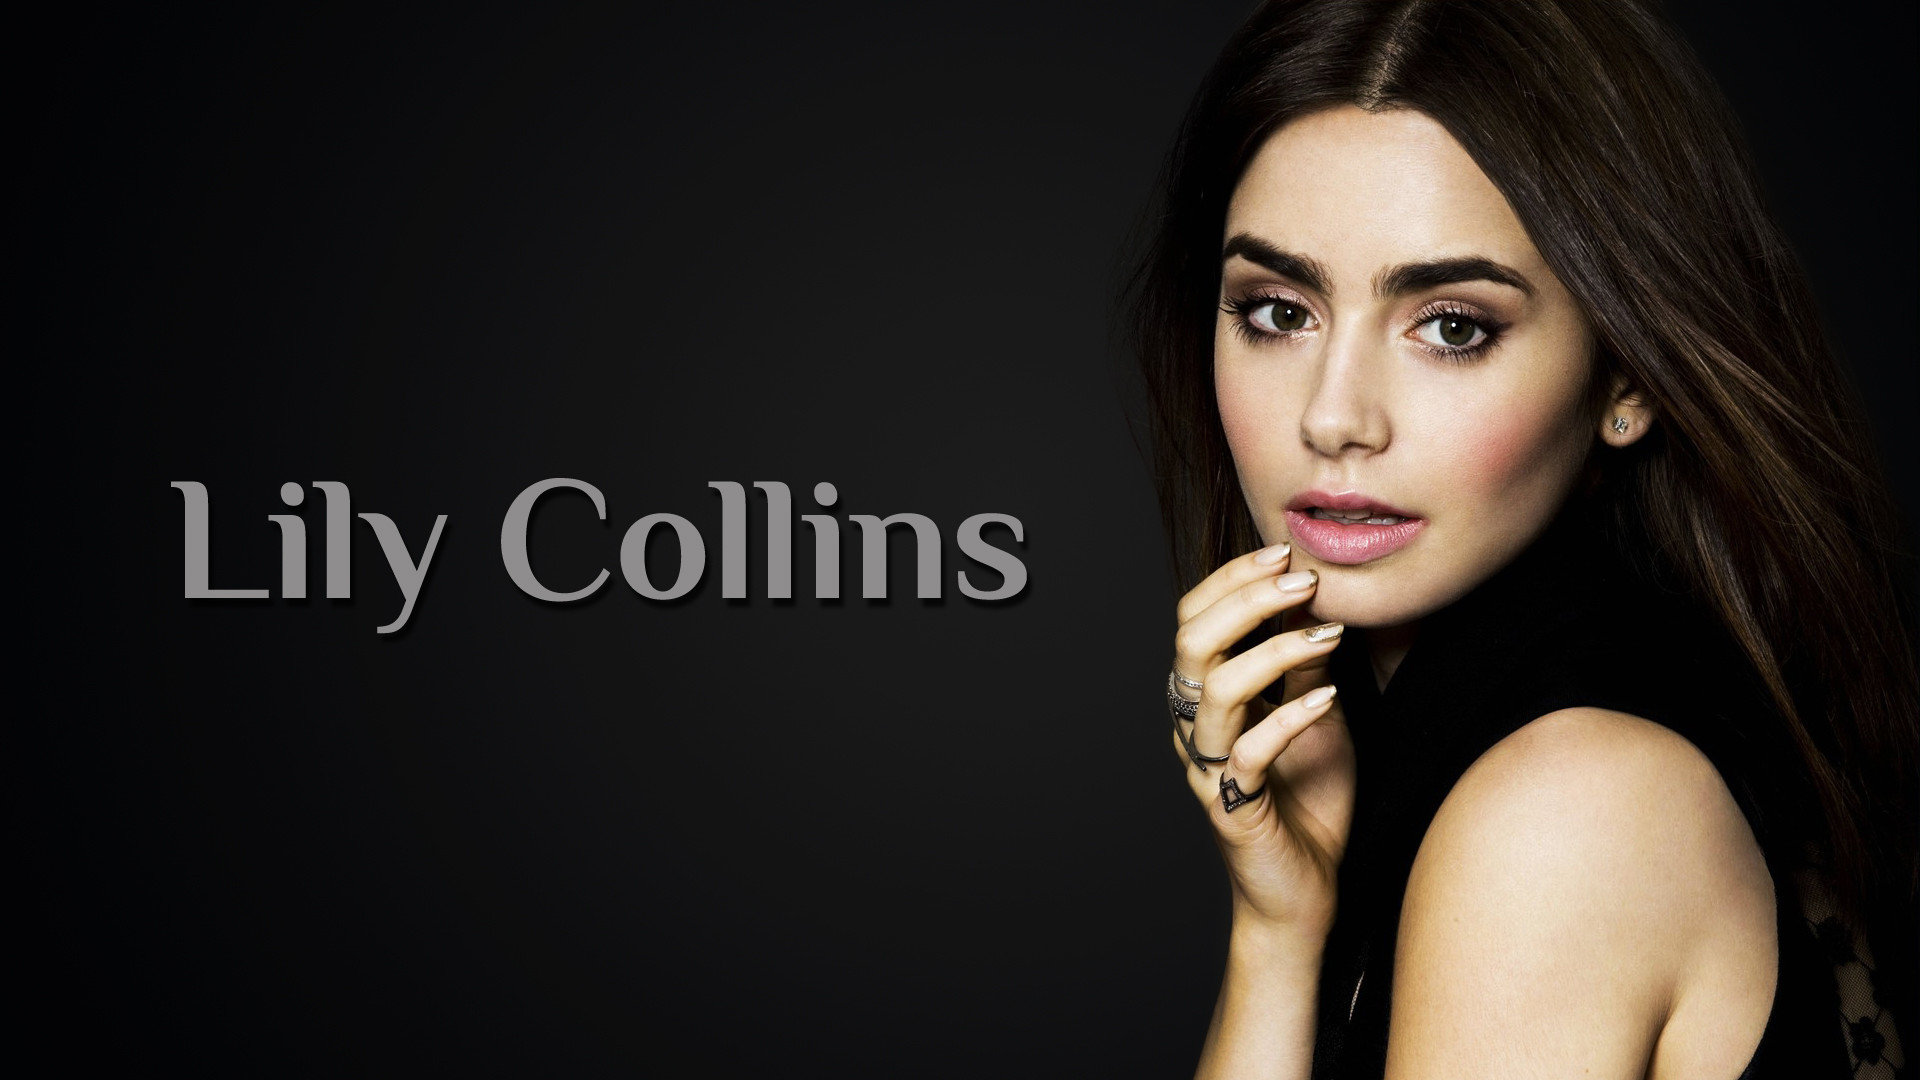 Free Lily Collins high quality background ID:410705 for 1080p computer